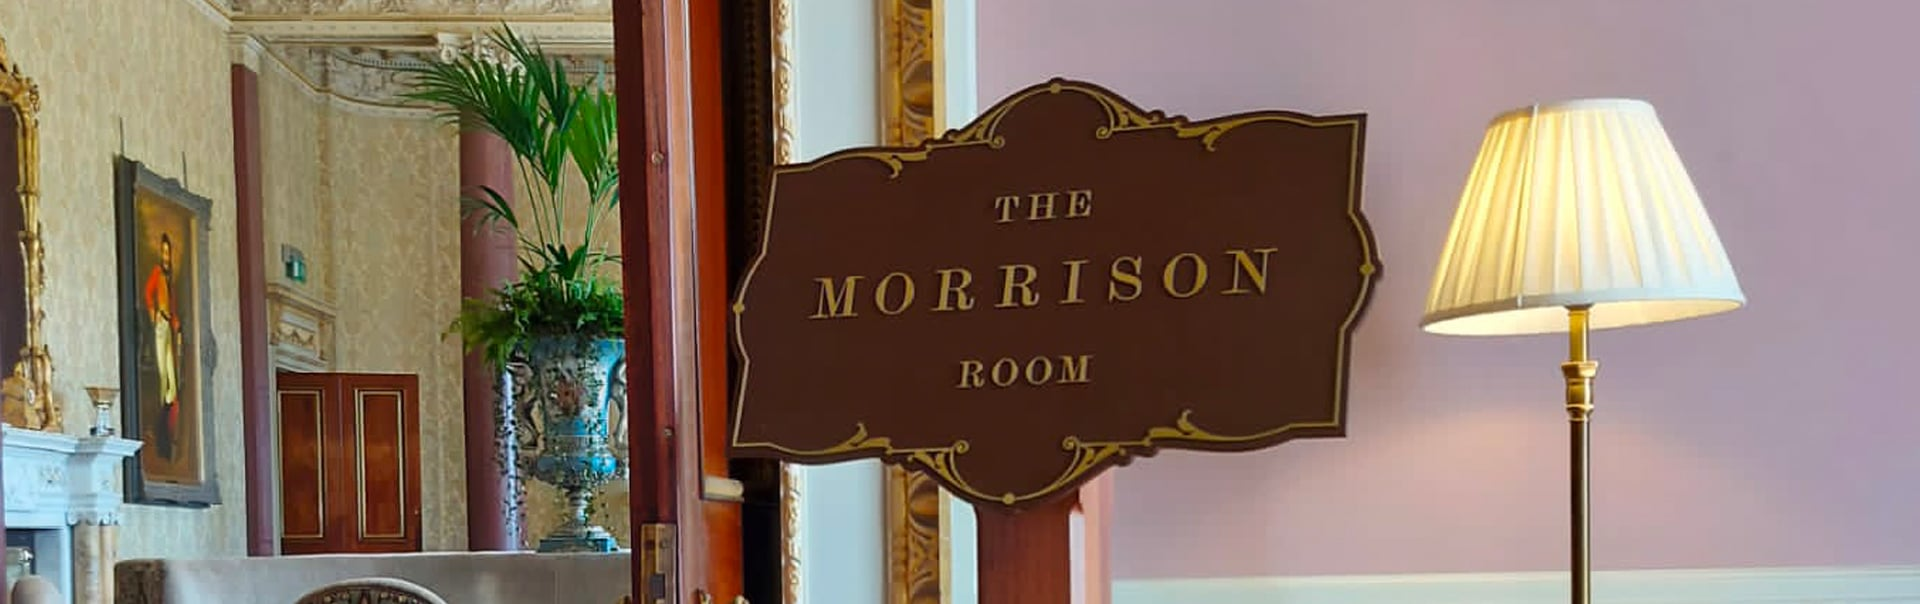 A wayfinding lectern welcomes diners to The Morrison Room at Carton House